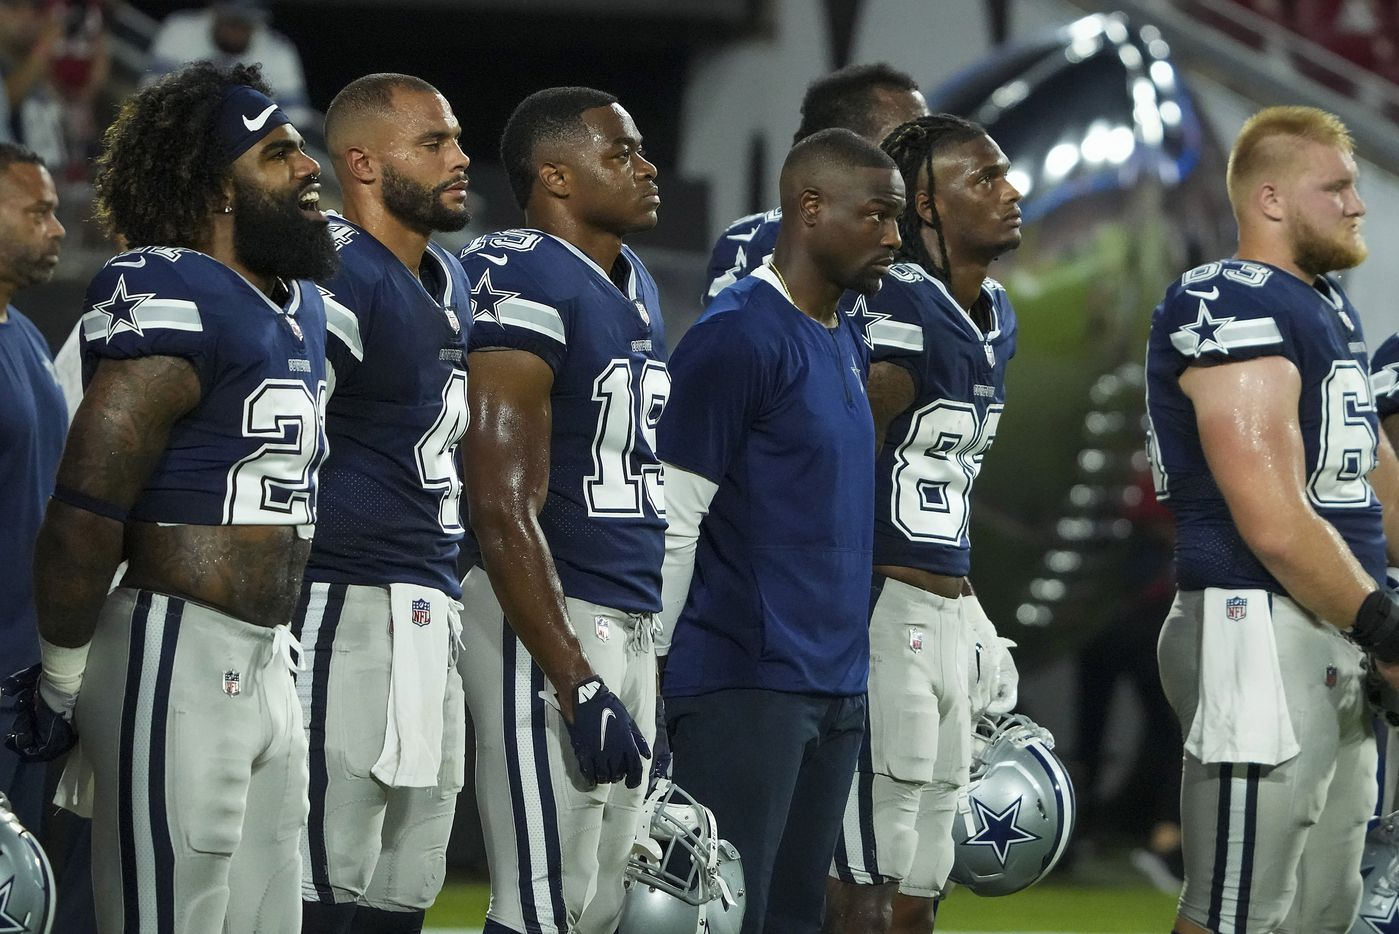 """Dallas Cowboys running back Ezekiel Elliott (21) sings along with the playing of """"Lift Every Voice and Sing"""" before an NFL football game against the Tampa Bay Buccaneers at Raymond James Stadium on Thursday, Sept. 9, 2021, in Tampa, Fla. (Smiley N. Pool/The Dallas Morning News)"""